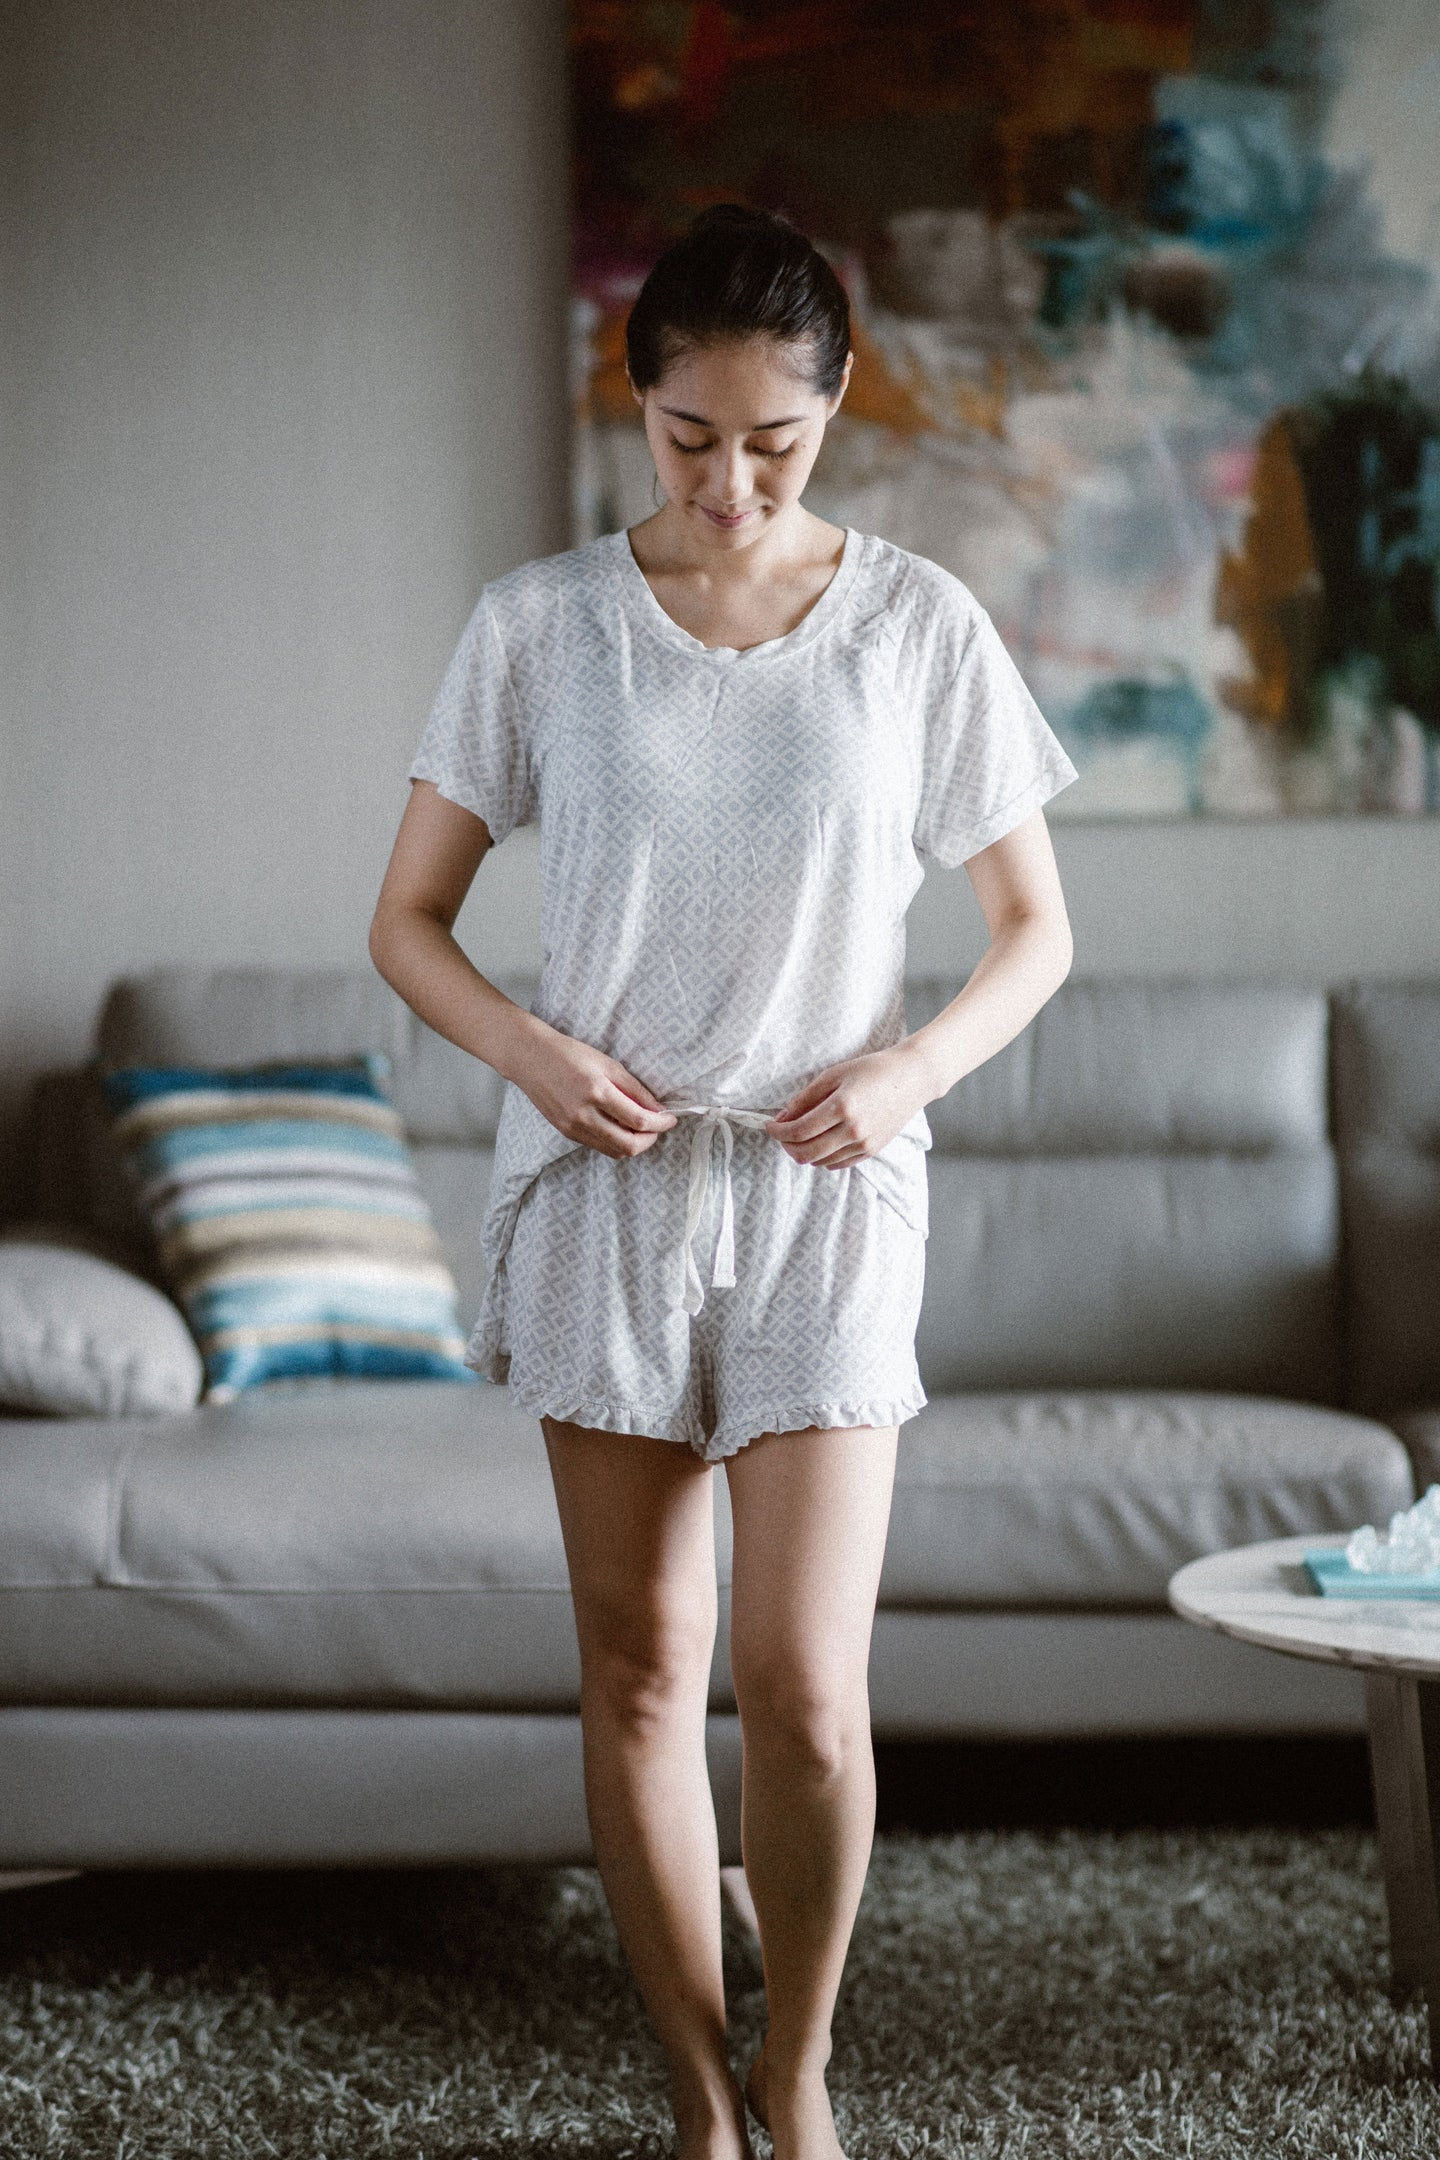 Bamboo Sleepwear Set Shorts and Tshirt- Gray Diamonds